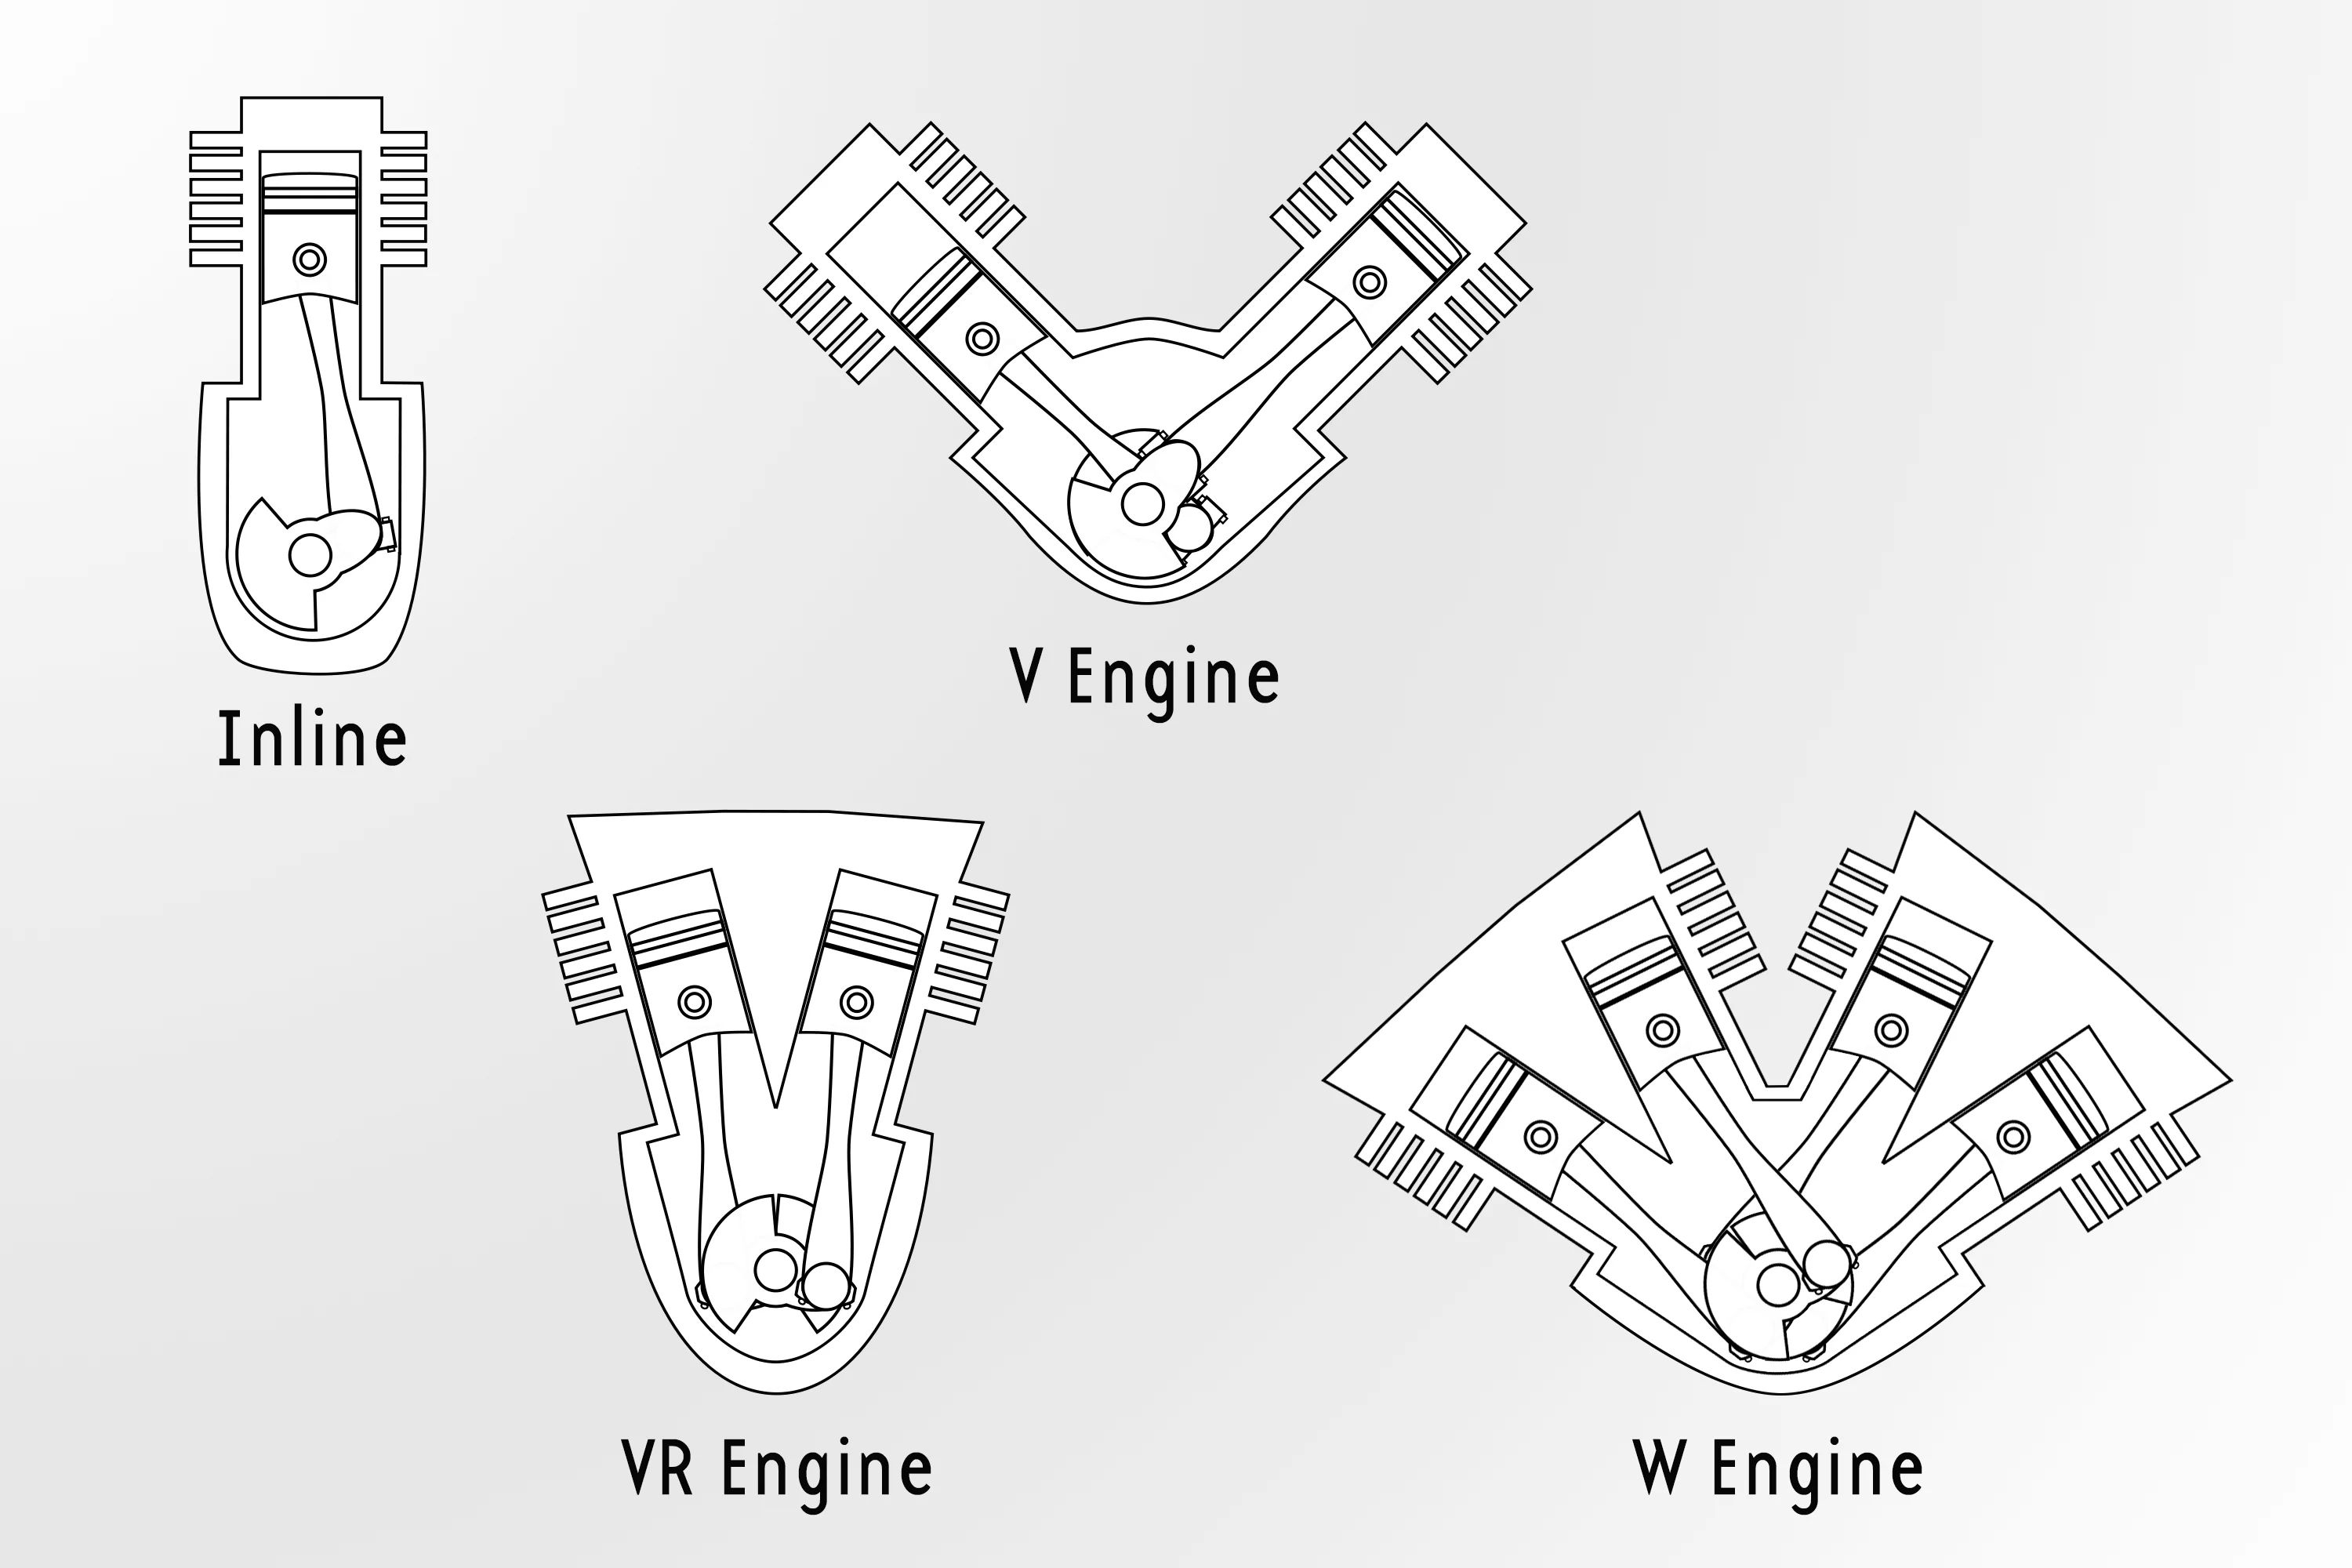 Vw V6 Engine Diagram Auto Electrical Wiring Jetta Vr6 Additionally On Harley Fuel Pet